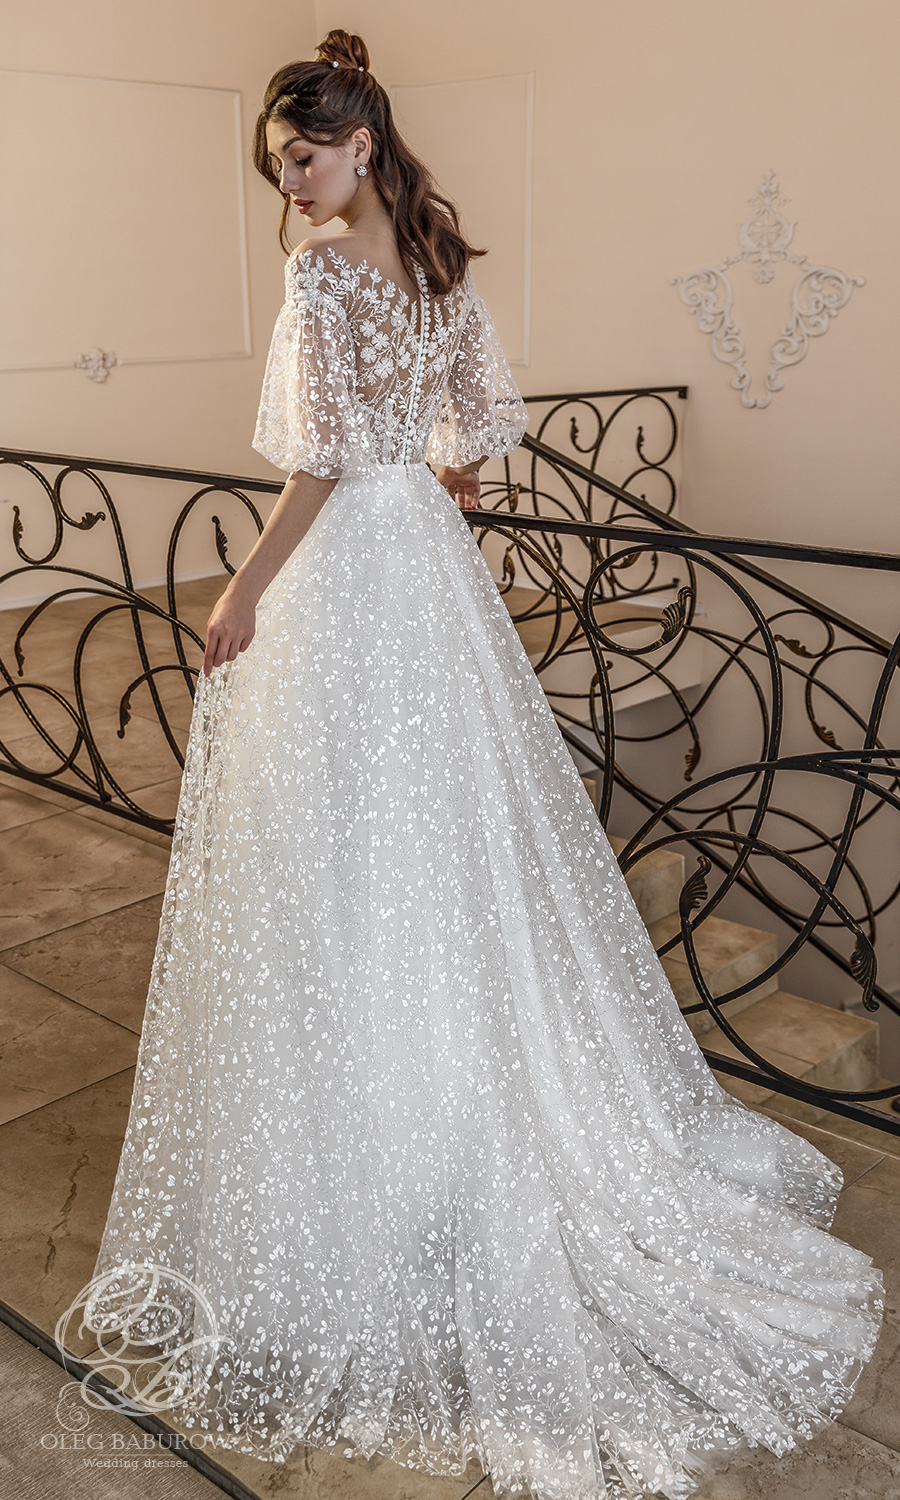 oleg baburow 2021 life miracle bridal elbow length puff sleeves off shoulder neckline embellished bodice a line ball gown wedding dress chapel train (muse) bv